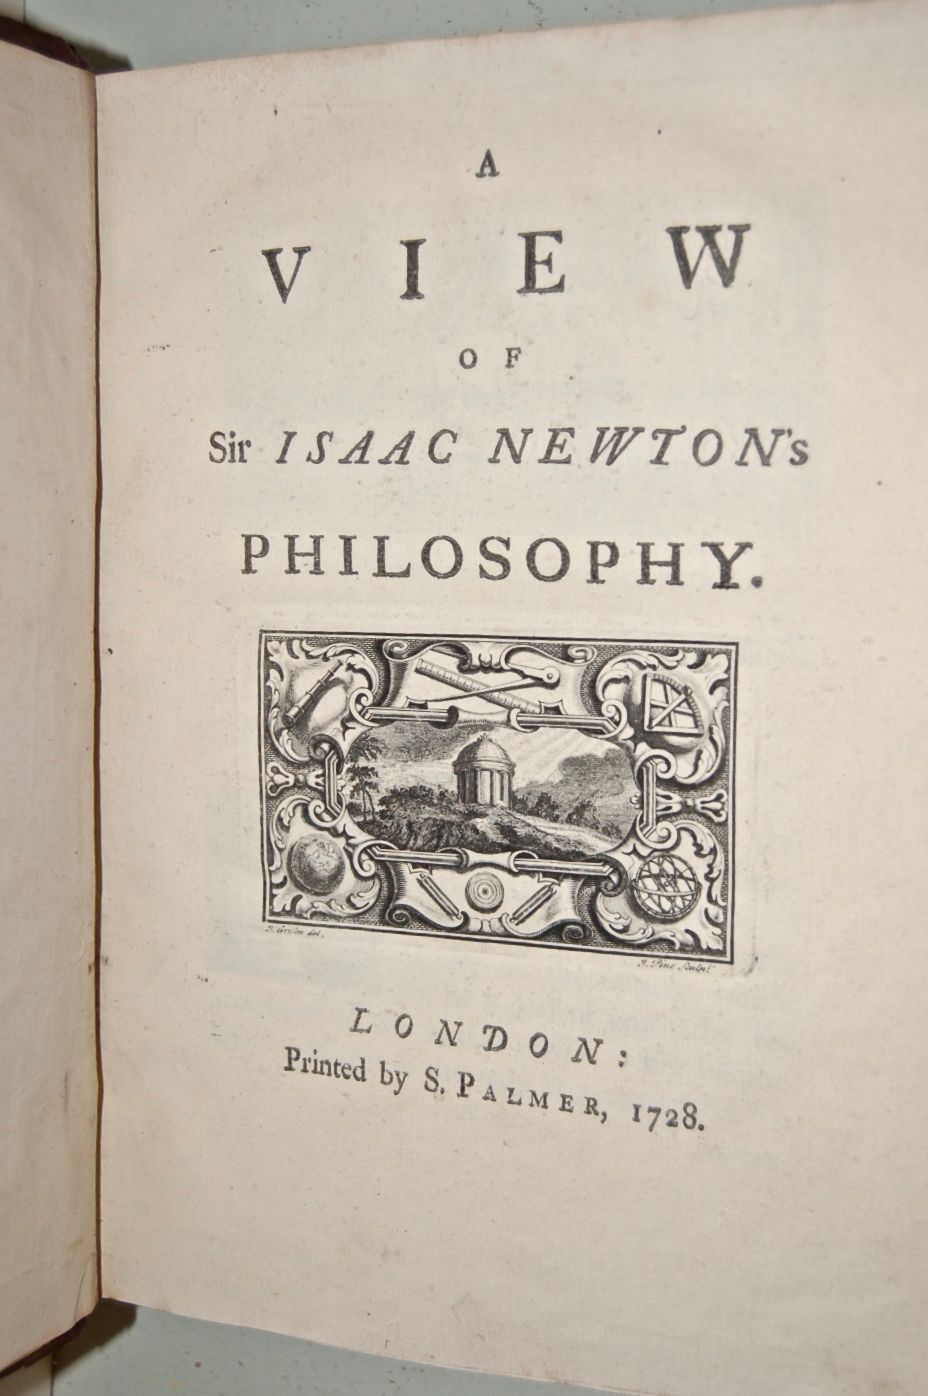 A View of Sir Isaac Newton's Philosophy.